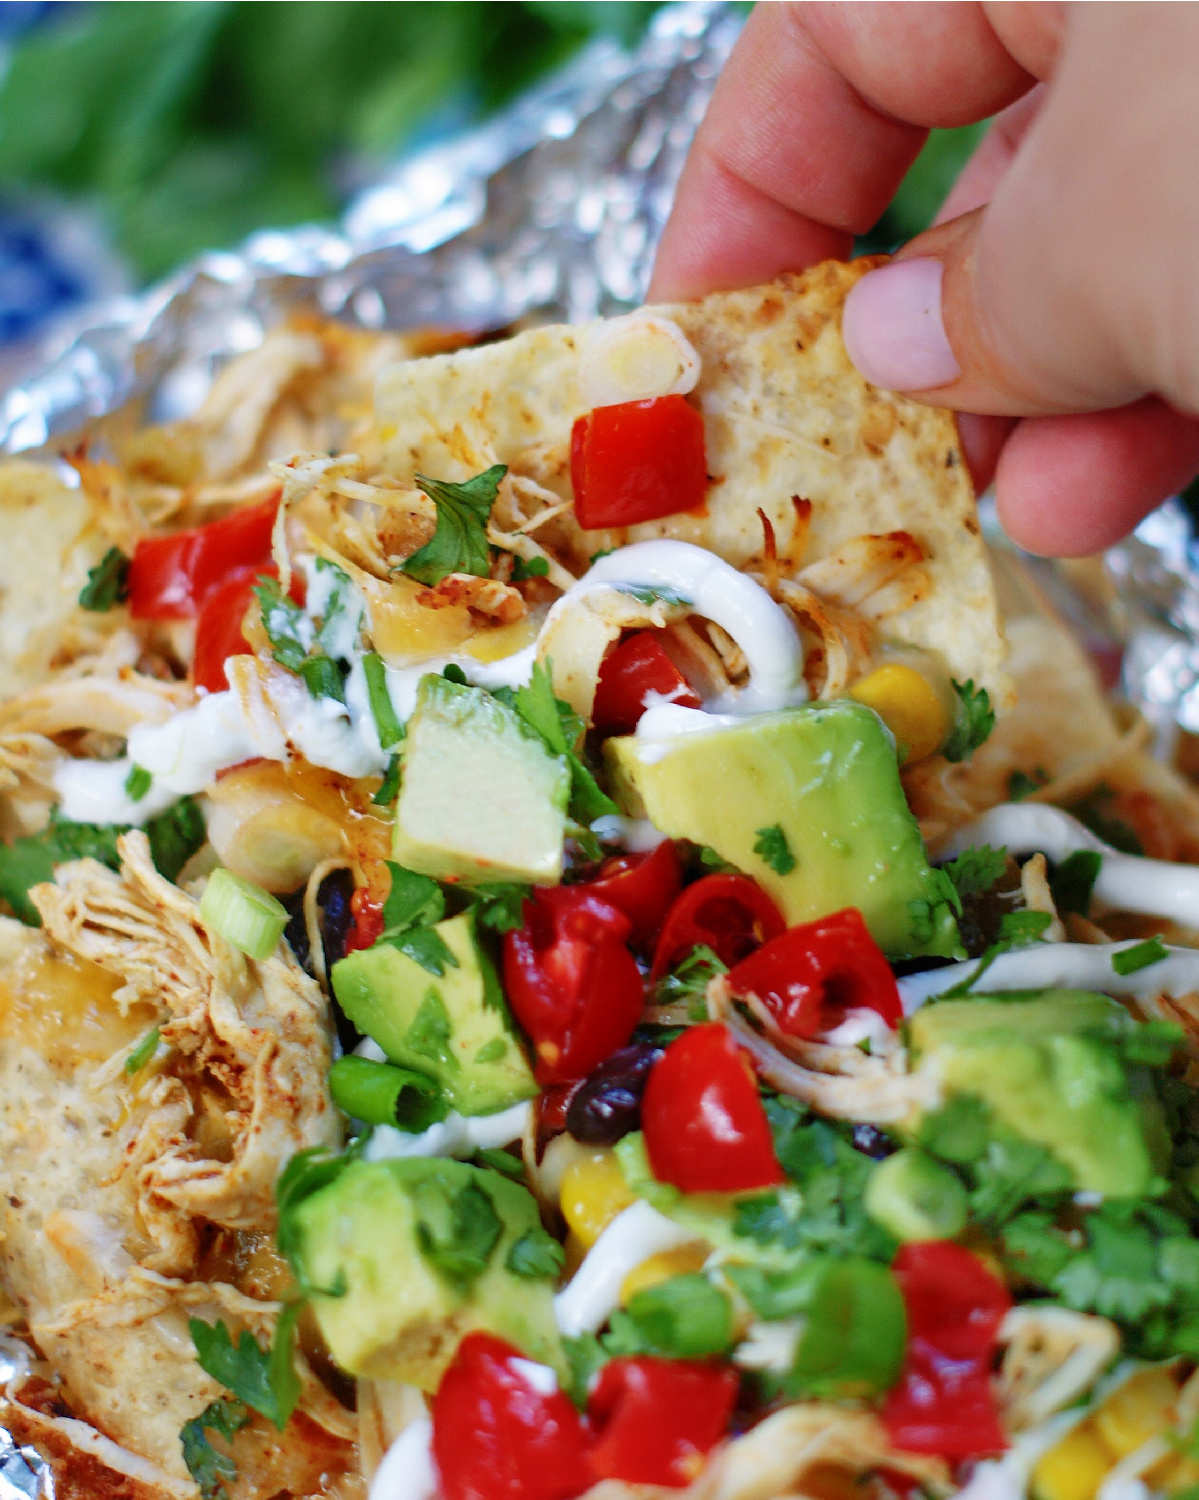 upclose of a chicken nacho with toppings to show serving